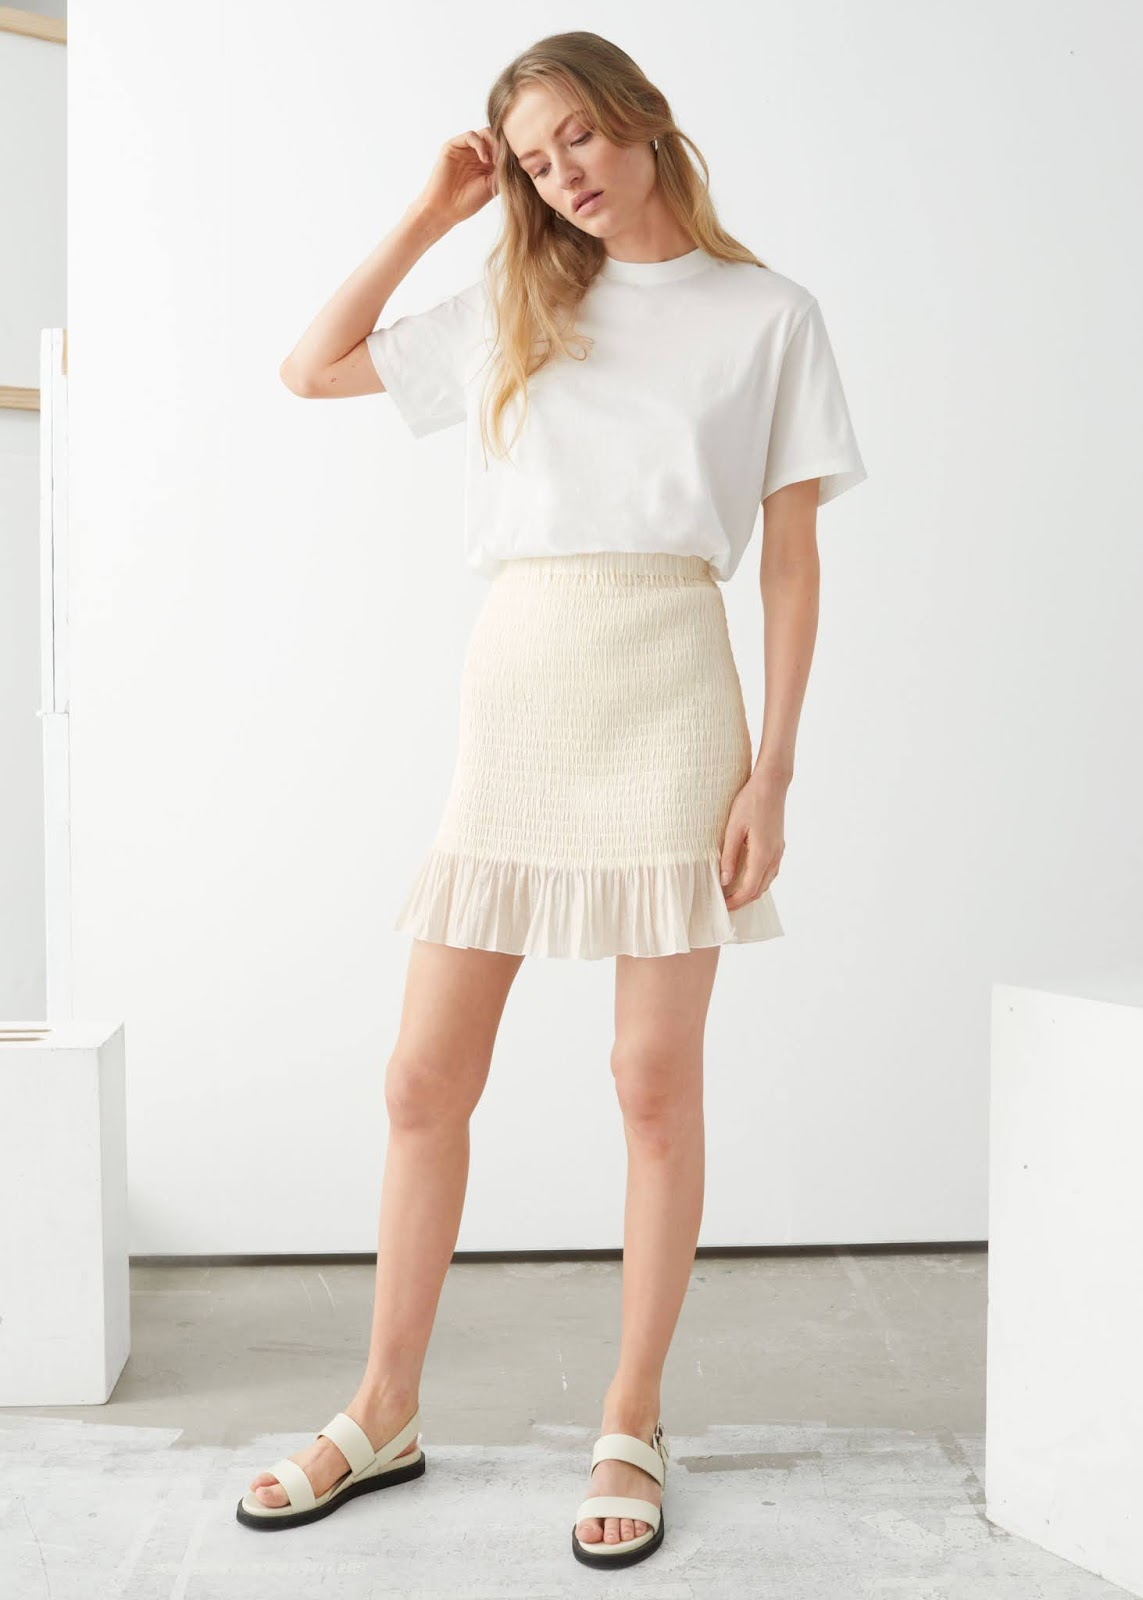 Stylish Summer Outfit Idea: White T-Shirt, Under-$100 Mini Skirt With Smocked Detailing, and Flat Sandals.